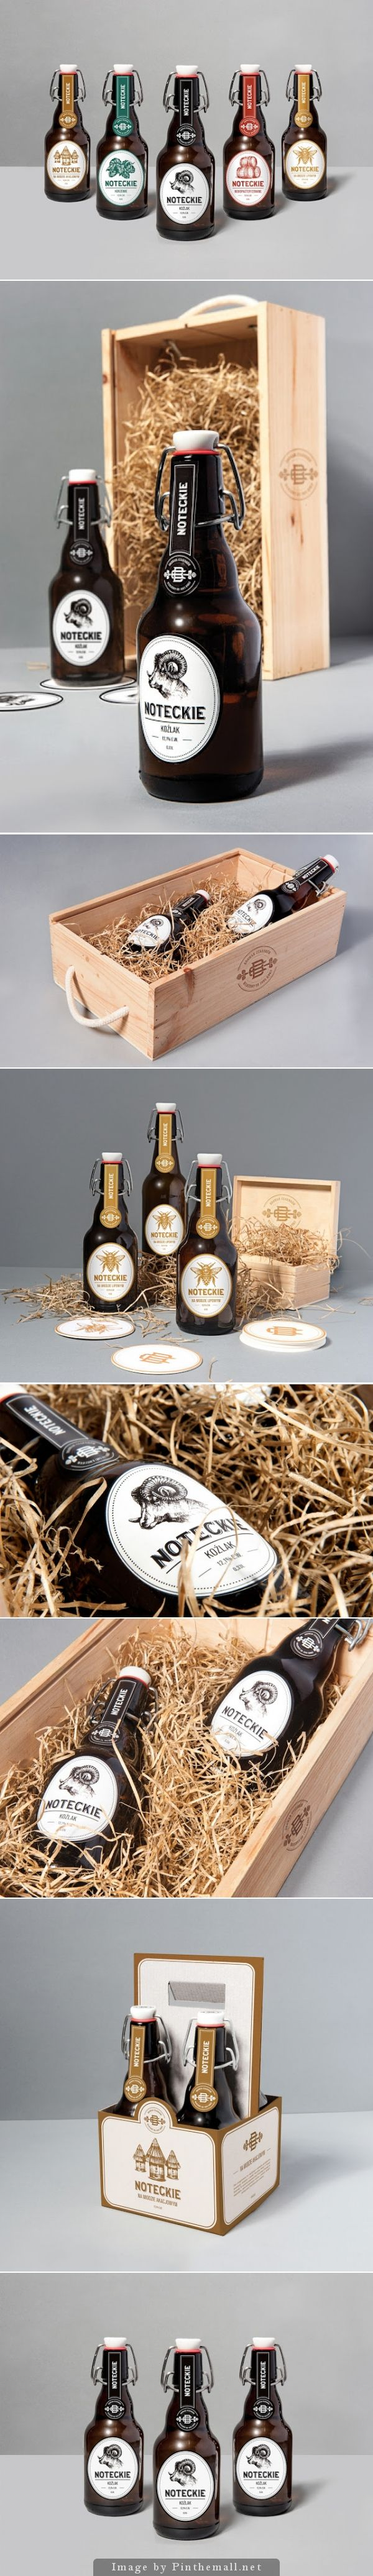 Unique Packaging Design, Czarnkow Brewery #packaging #design (http://www.pinterest.com/aldenchong/)